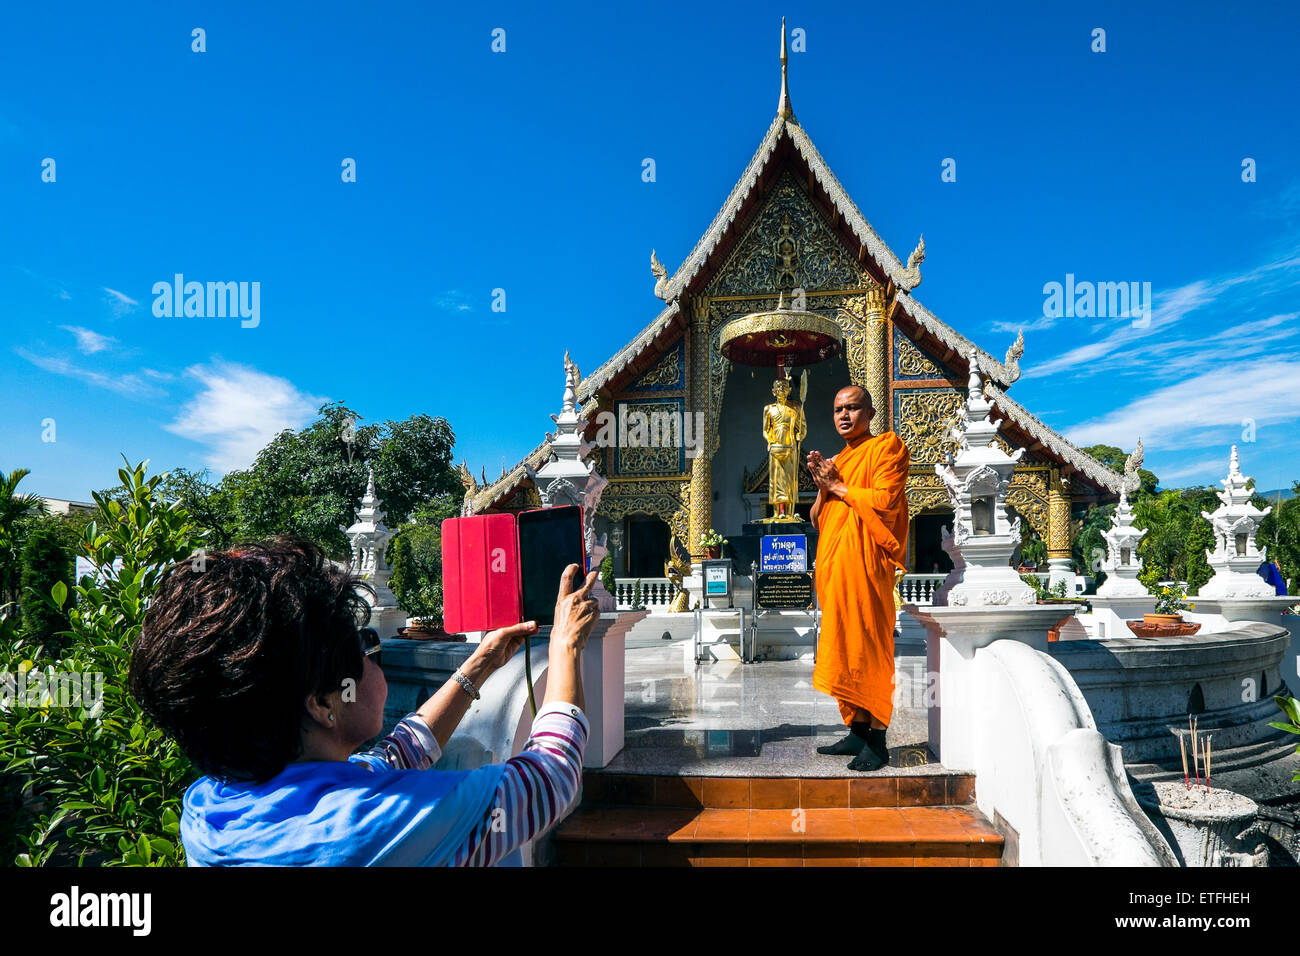 Asia. Thailand, Chiang Mai. Wat Phra Singh. Monk being photographed in front of the golden statue of a revered monk. - Stock Image